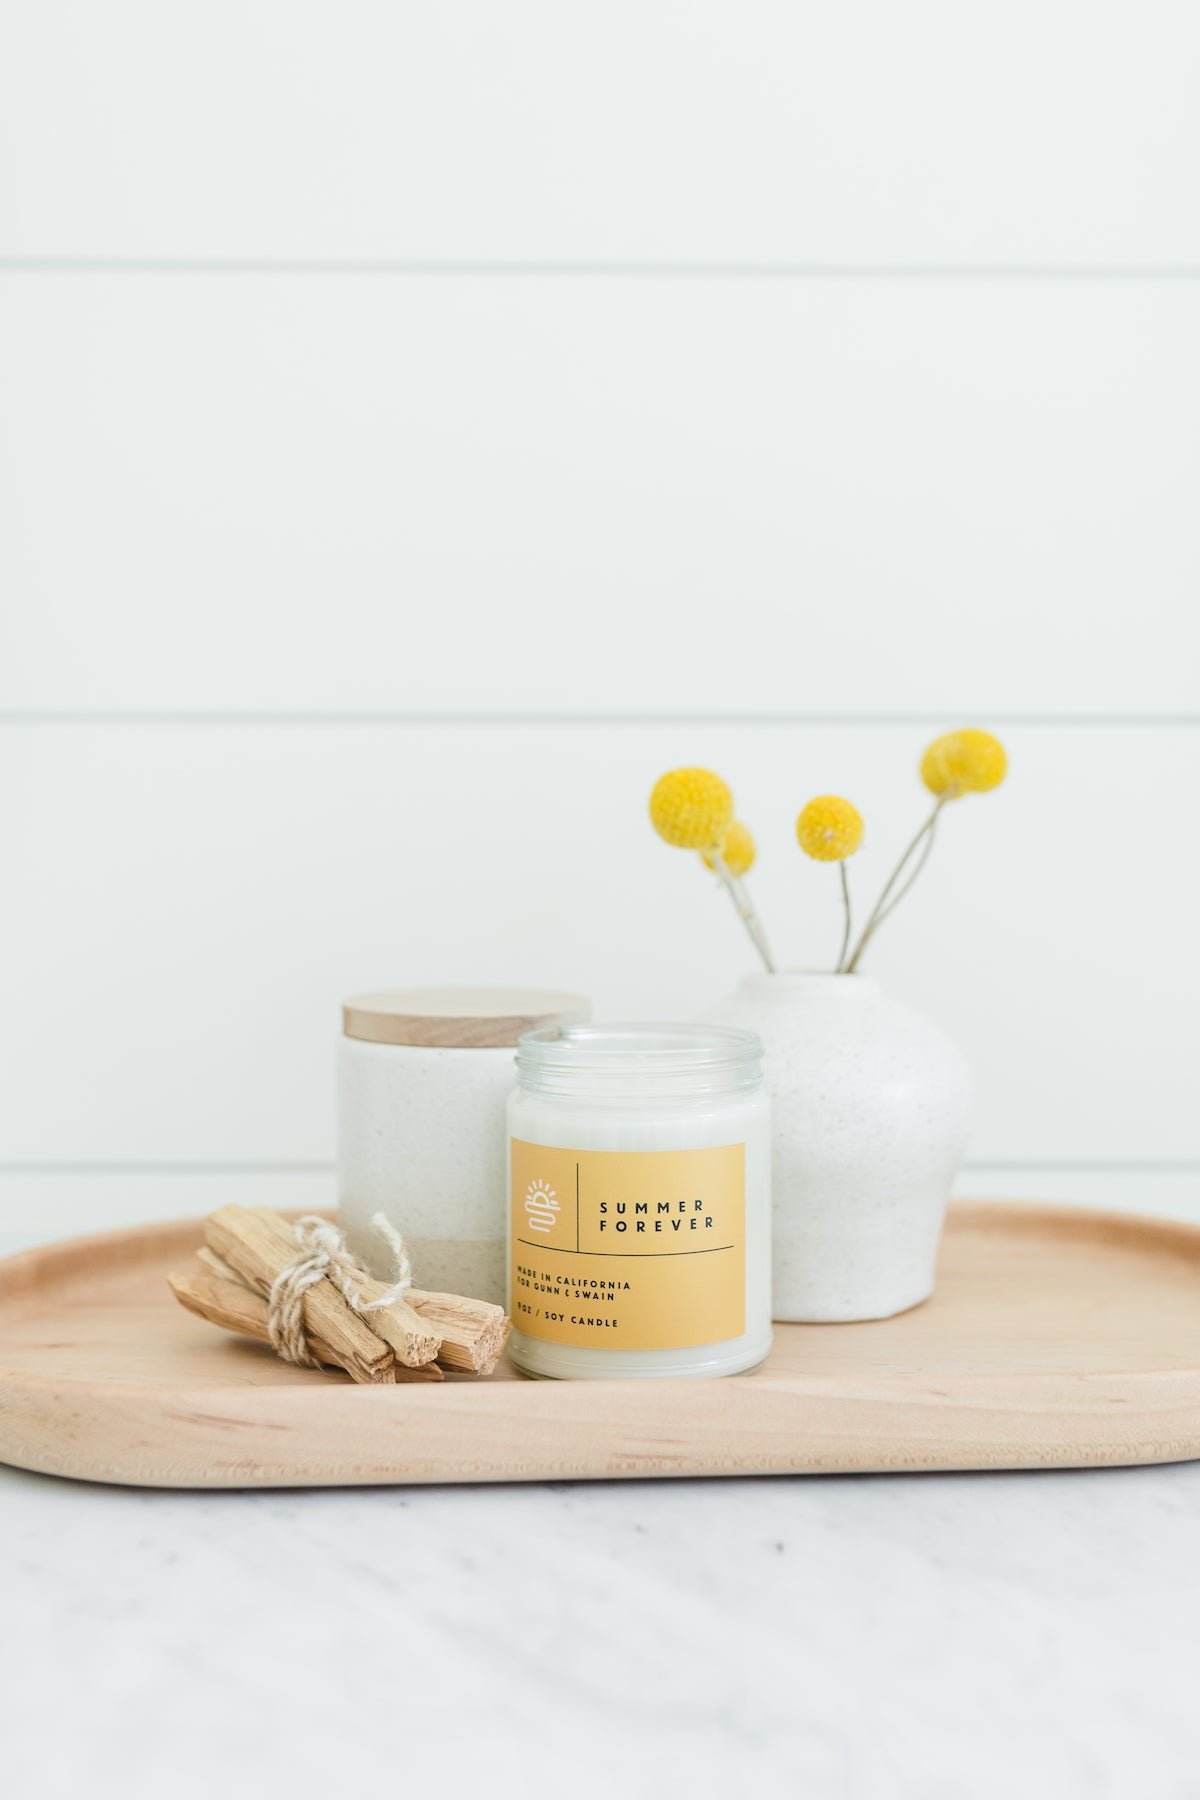 Summer Forever ☀ Soy Candle